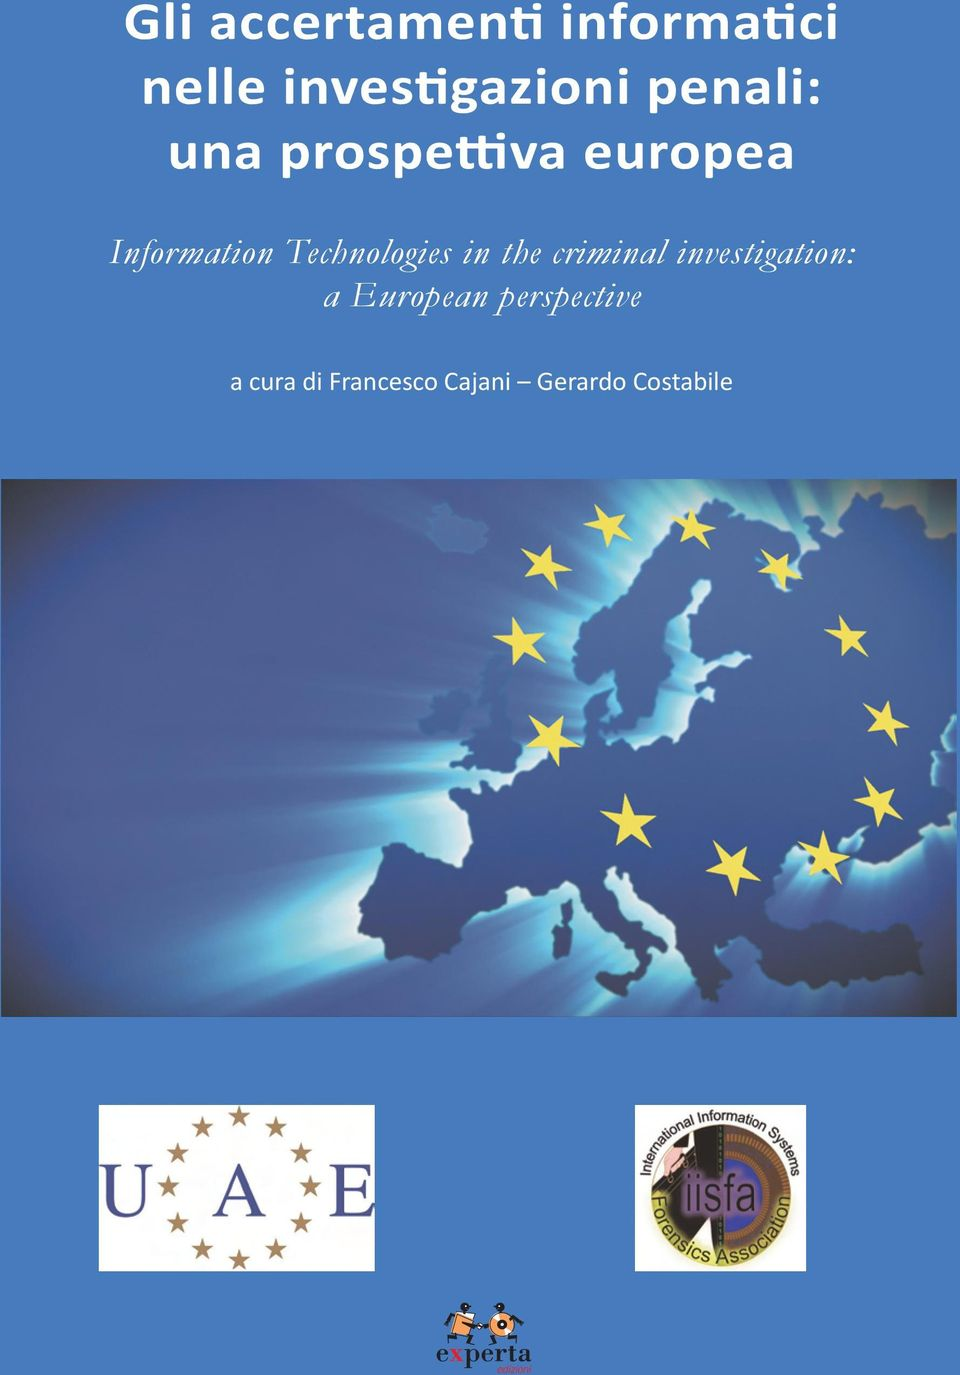 Technologies in the criminal investigation: a